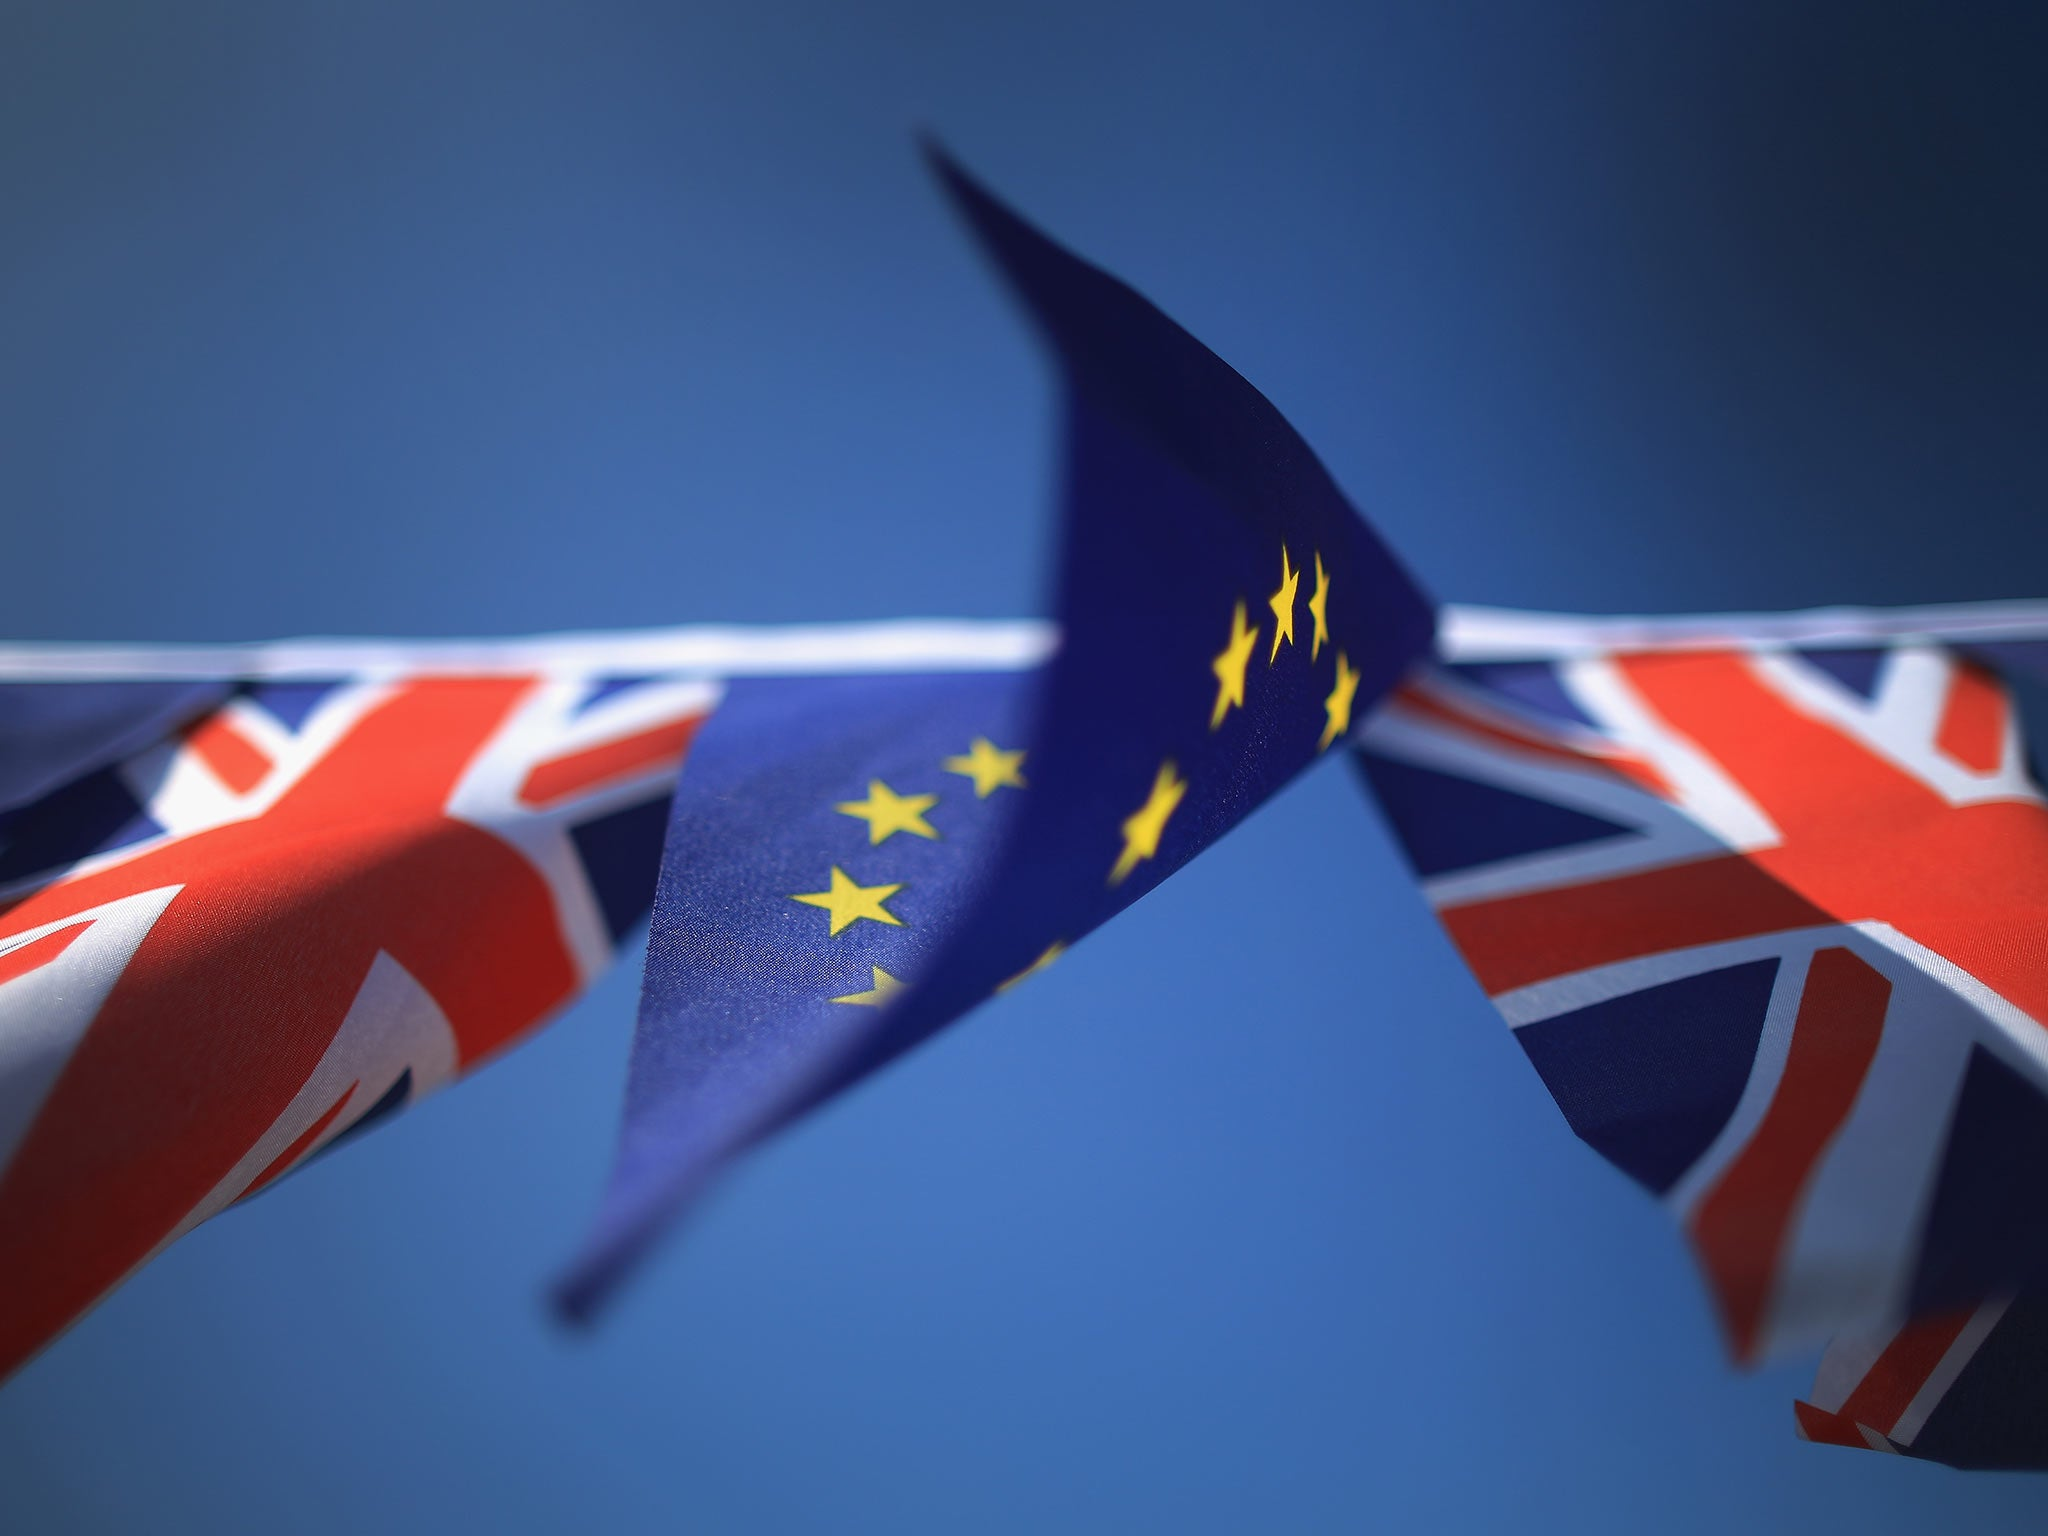 If you're an internationalist, you must vote to leave the EU. Here's why